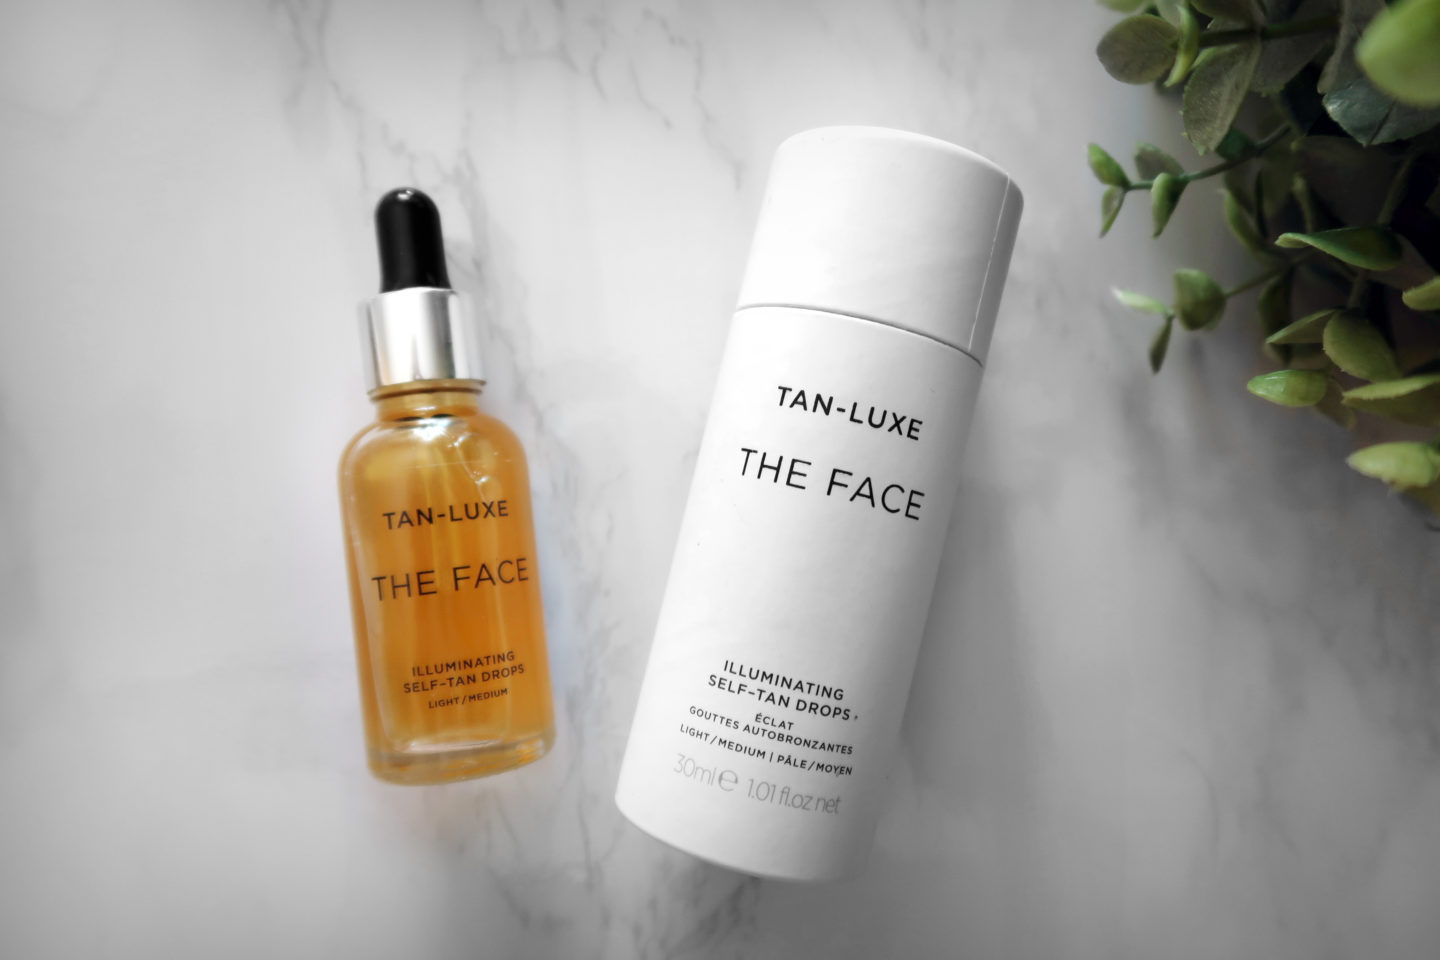 Face Self tan drops